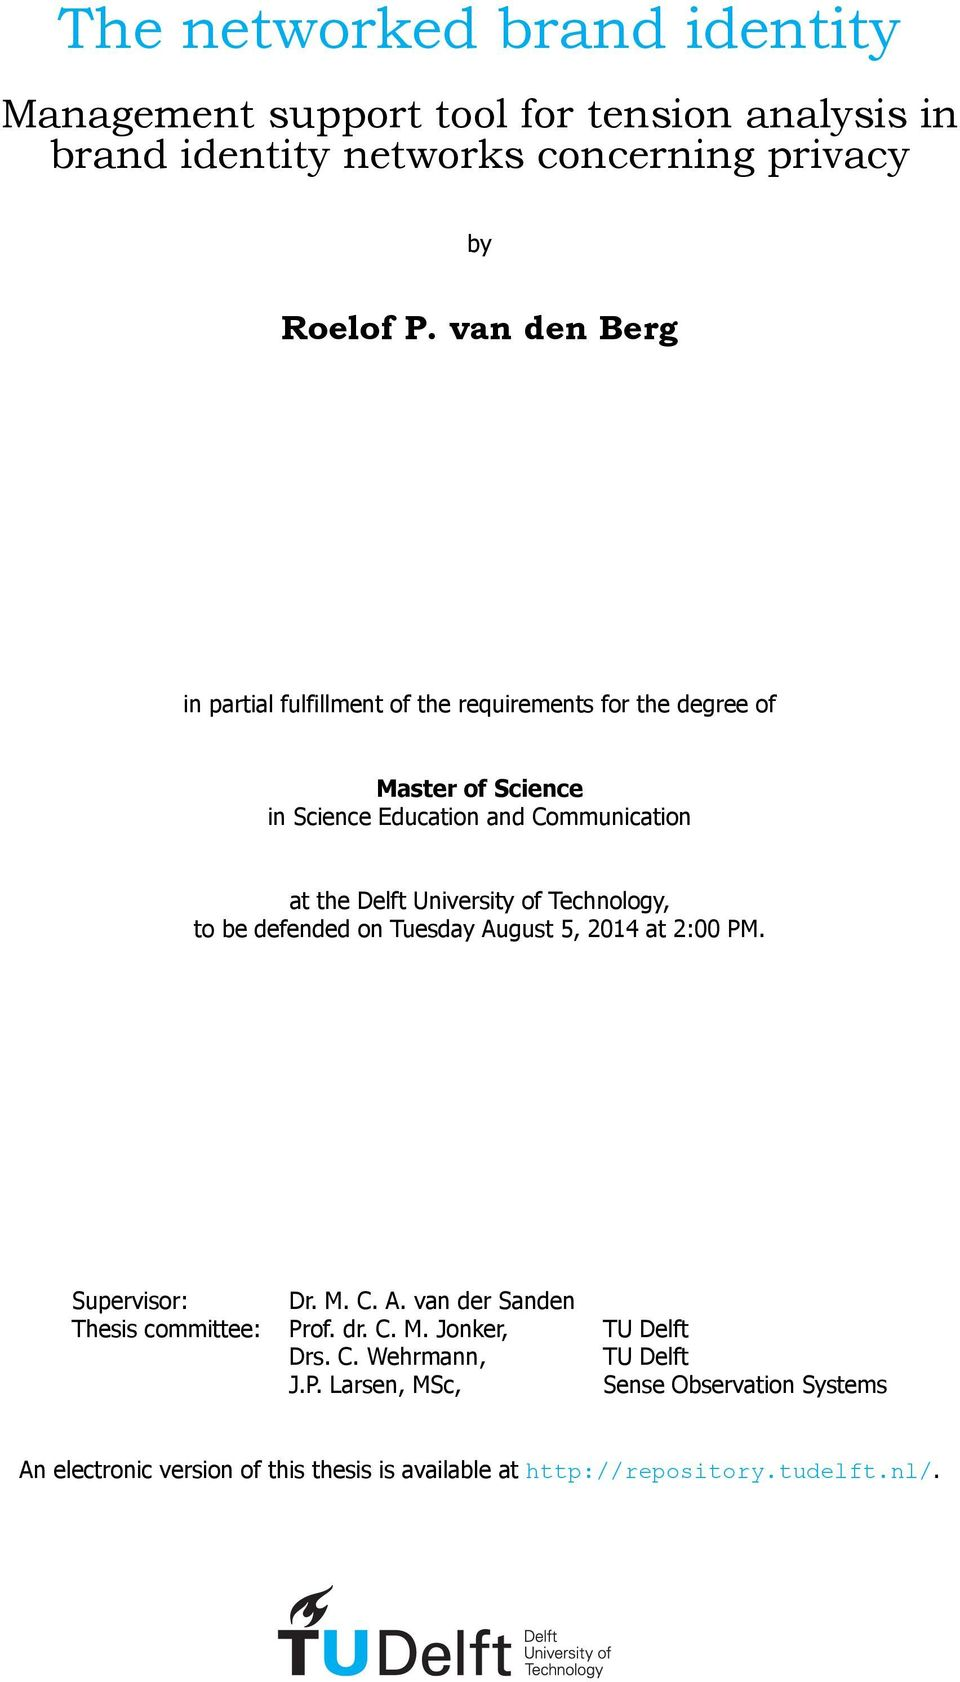 University of Technology, to be defended on Tuesday August 5, 2014 at 2:00 PM. Supervisor: Dr. M. C. A. van der Sanden Thesis committee: Prof. dr. C. M. Jonker, TU Delft Drs.